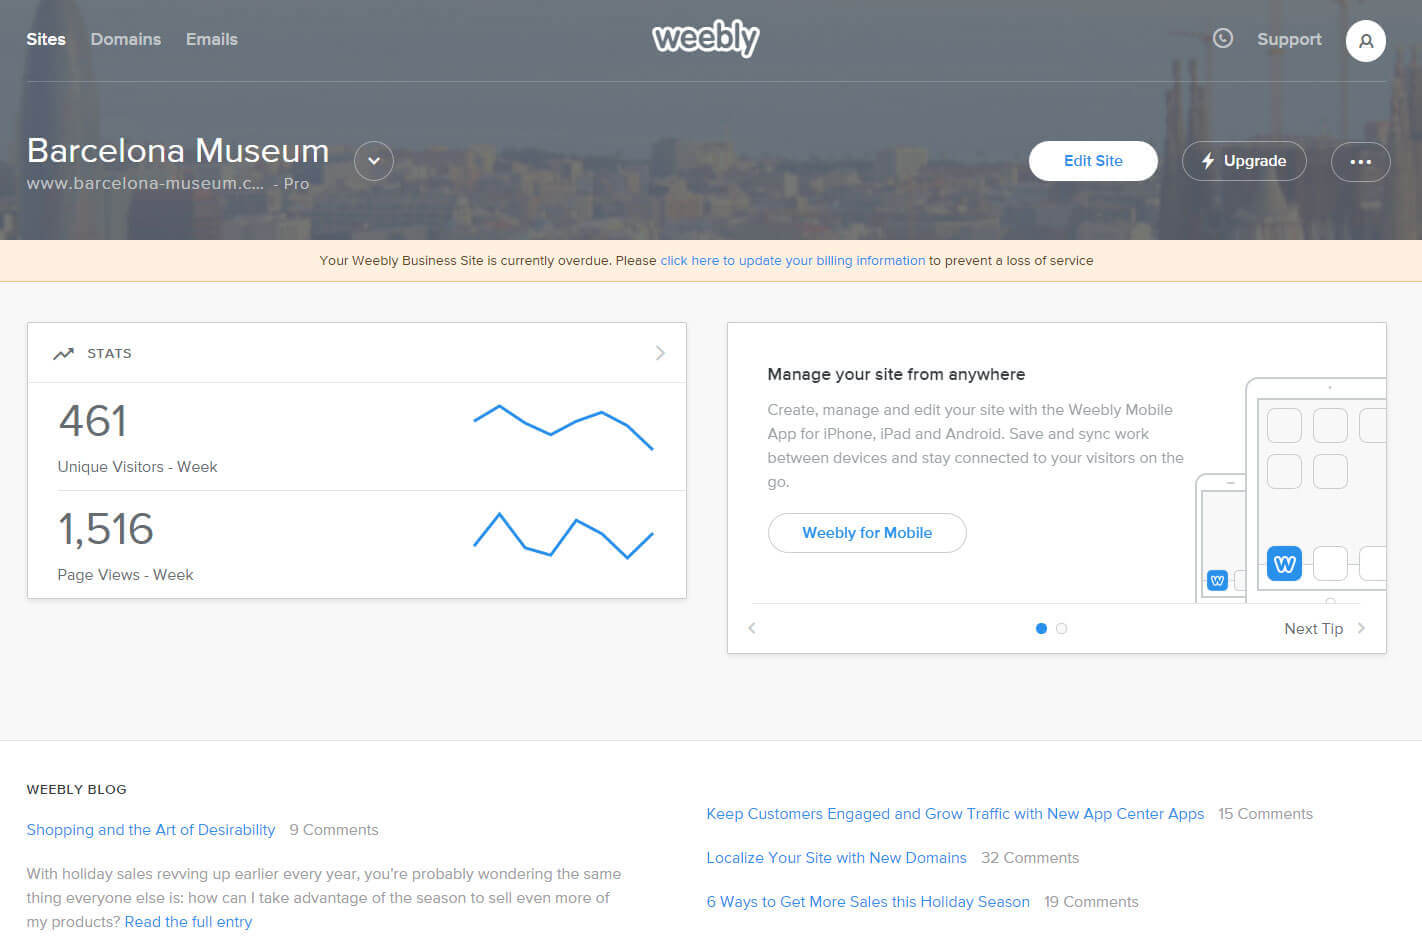 Website builder Weebly warranty express service code